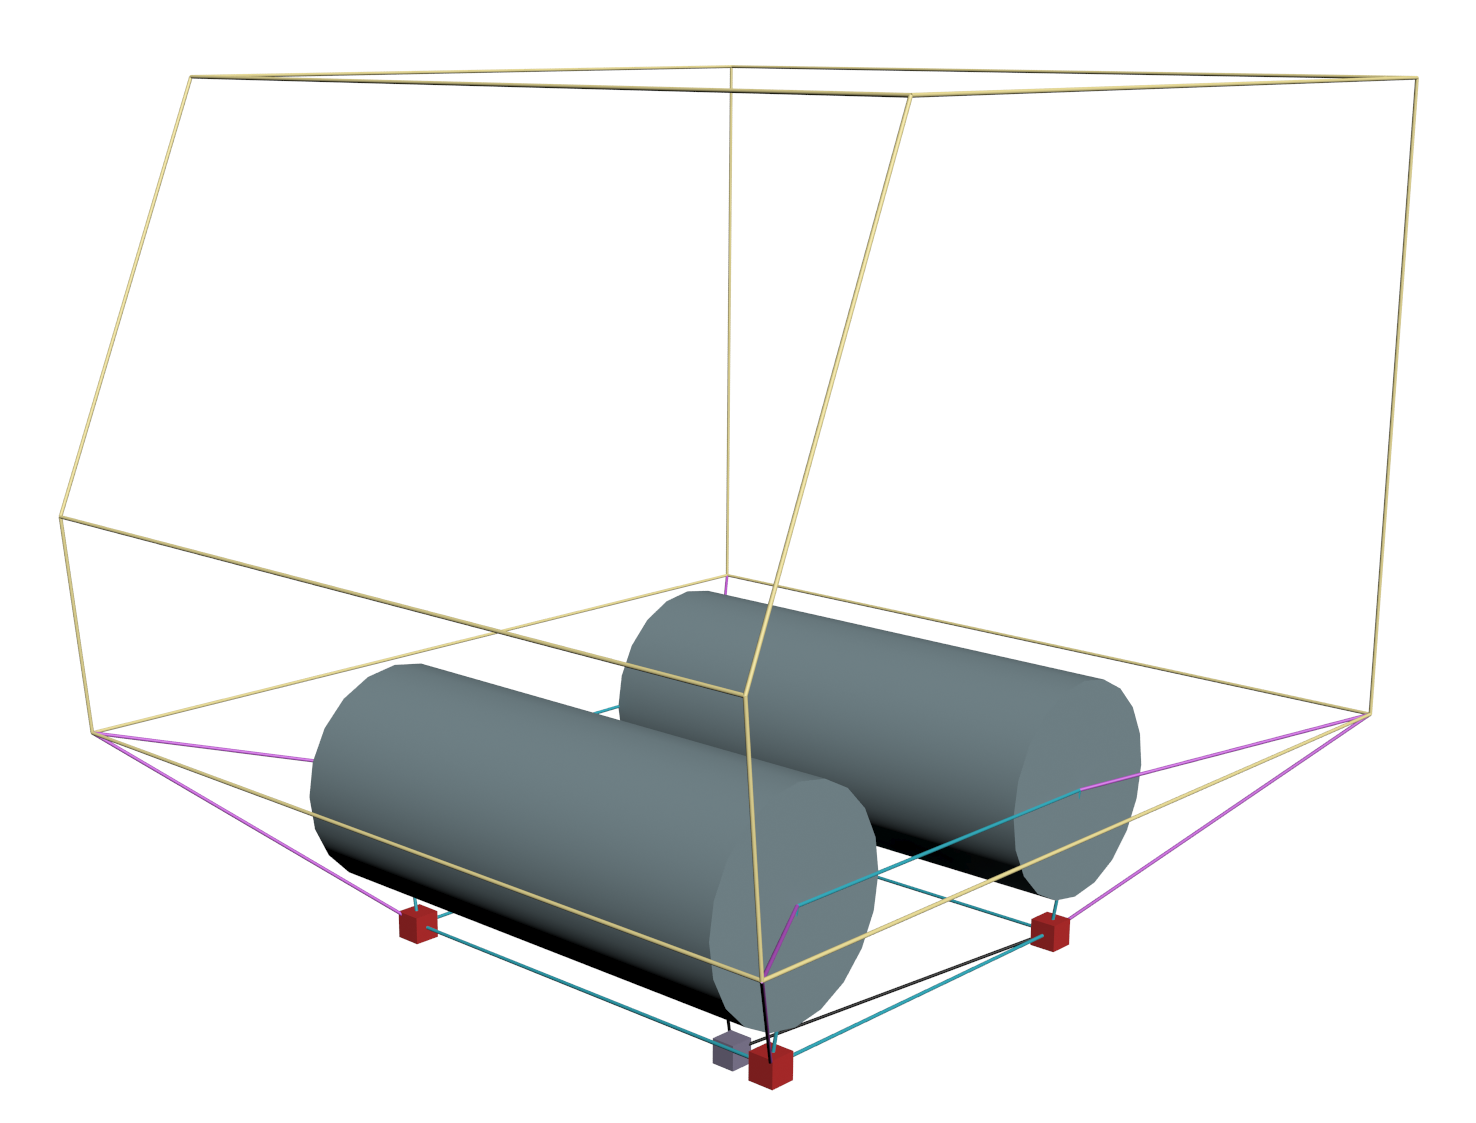 fig5-chassis